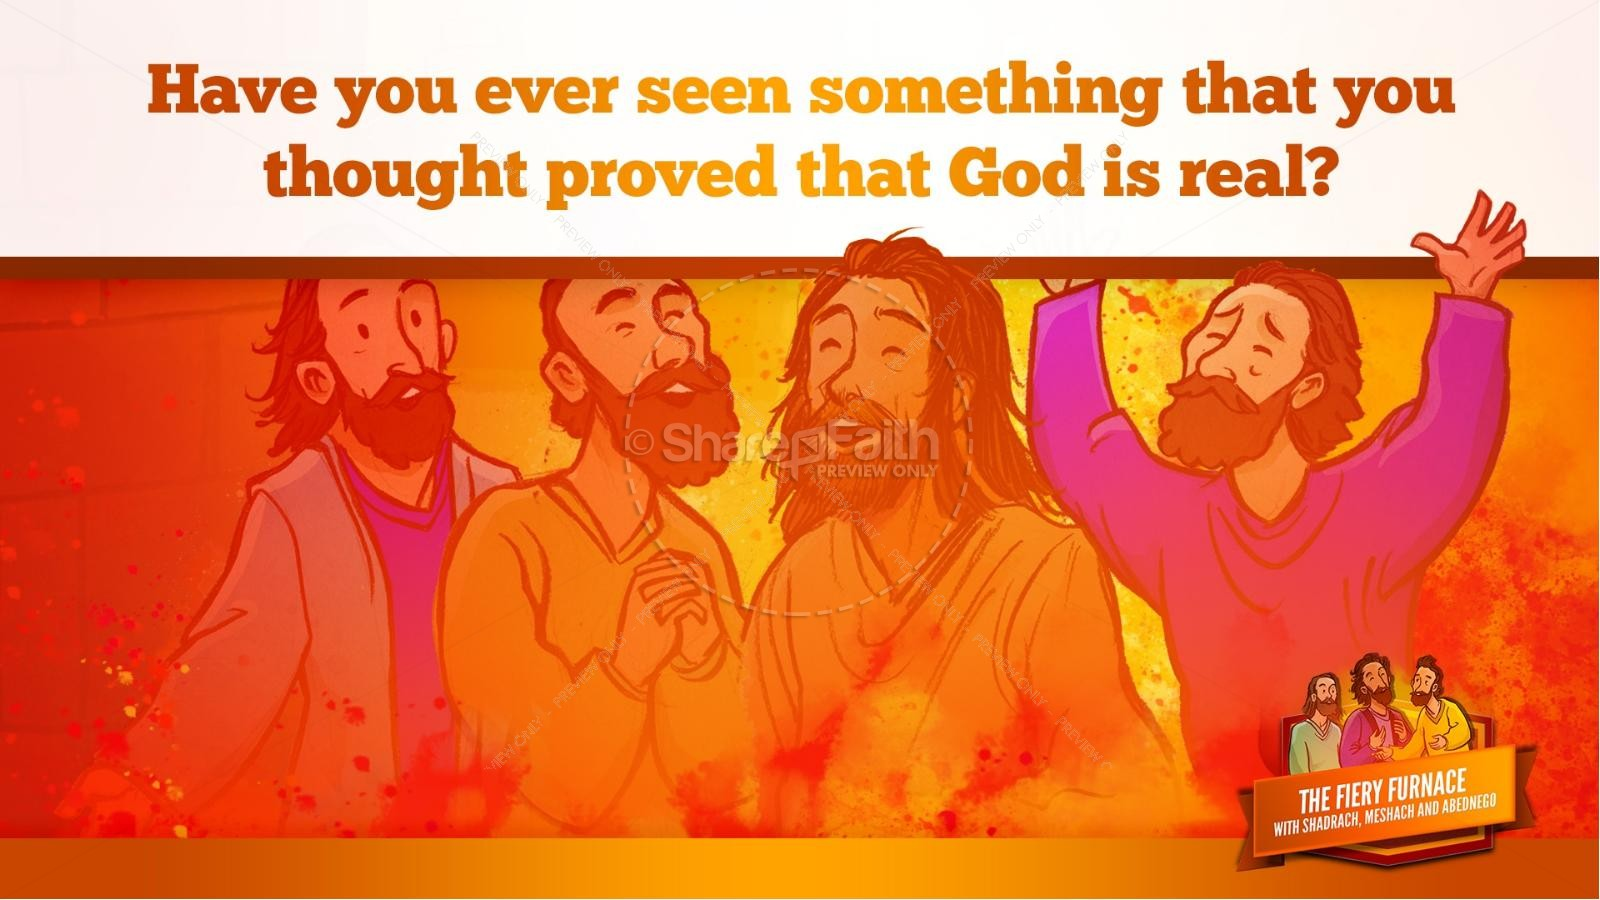 The Fiery Furnace with Shadrach, Meshach and Abednego Kids Bible Story | slide 58